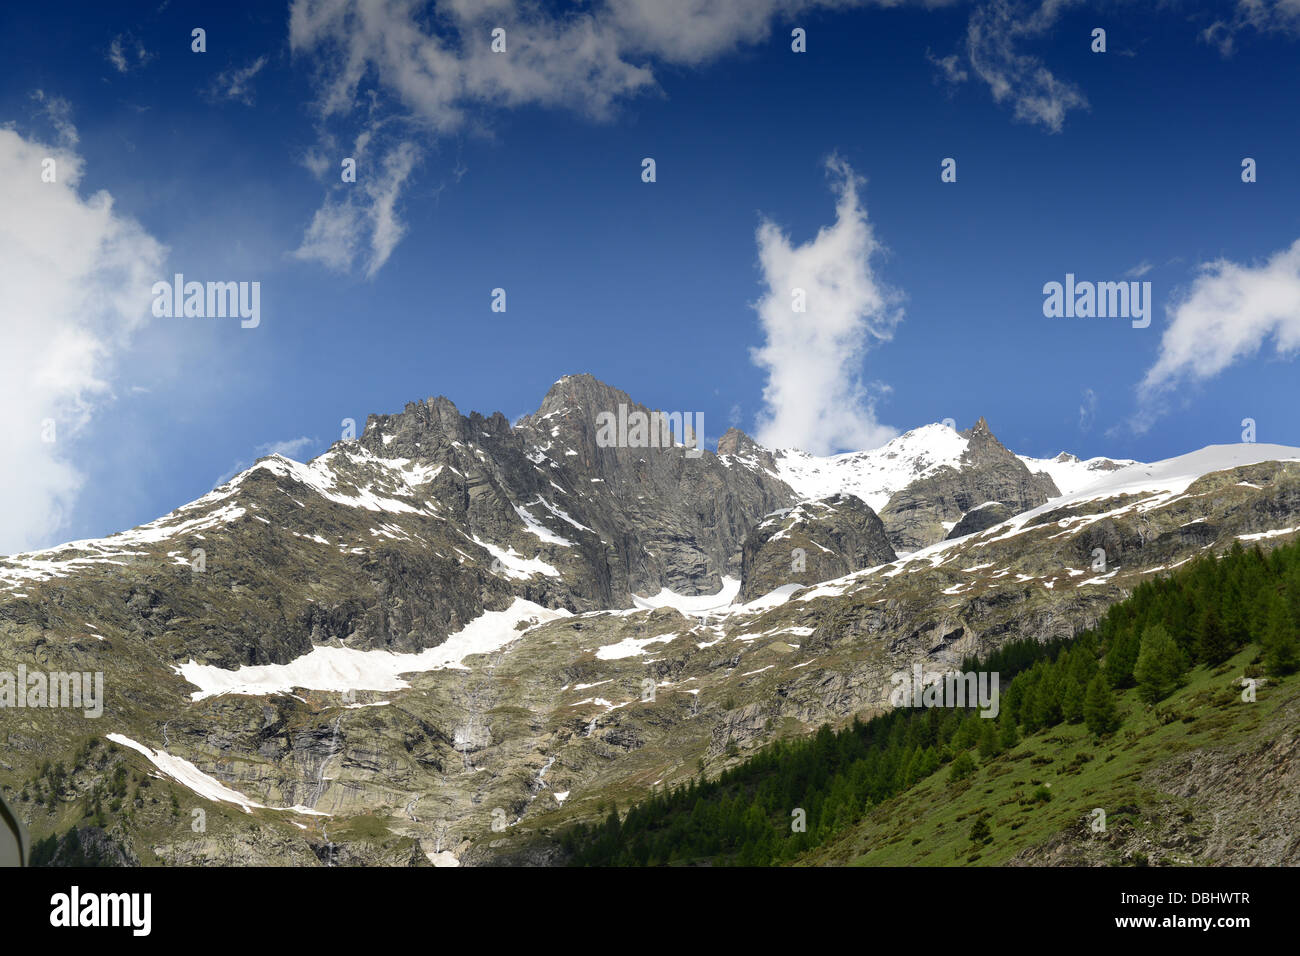 Mont Blanc or Monte Bianco from the Italian side of the tunnel in summer - Stock Image